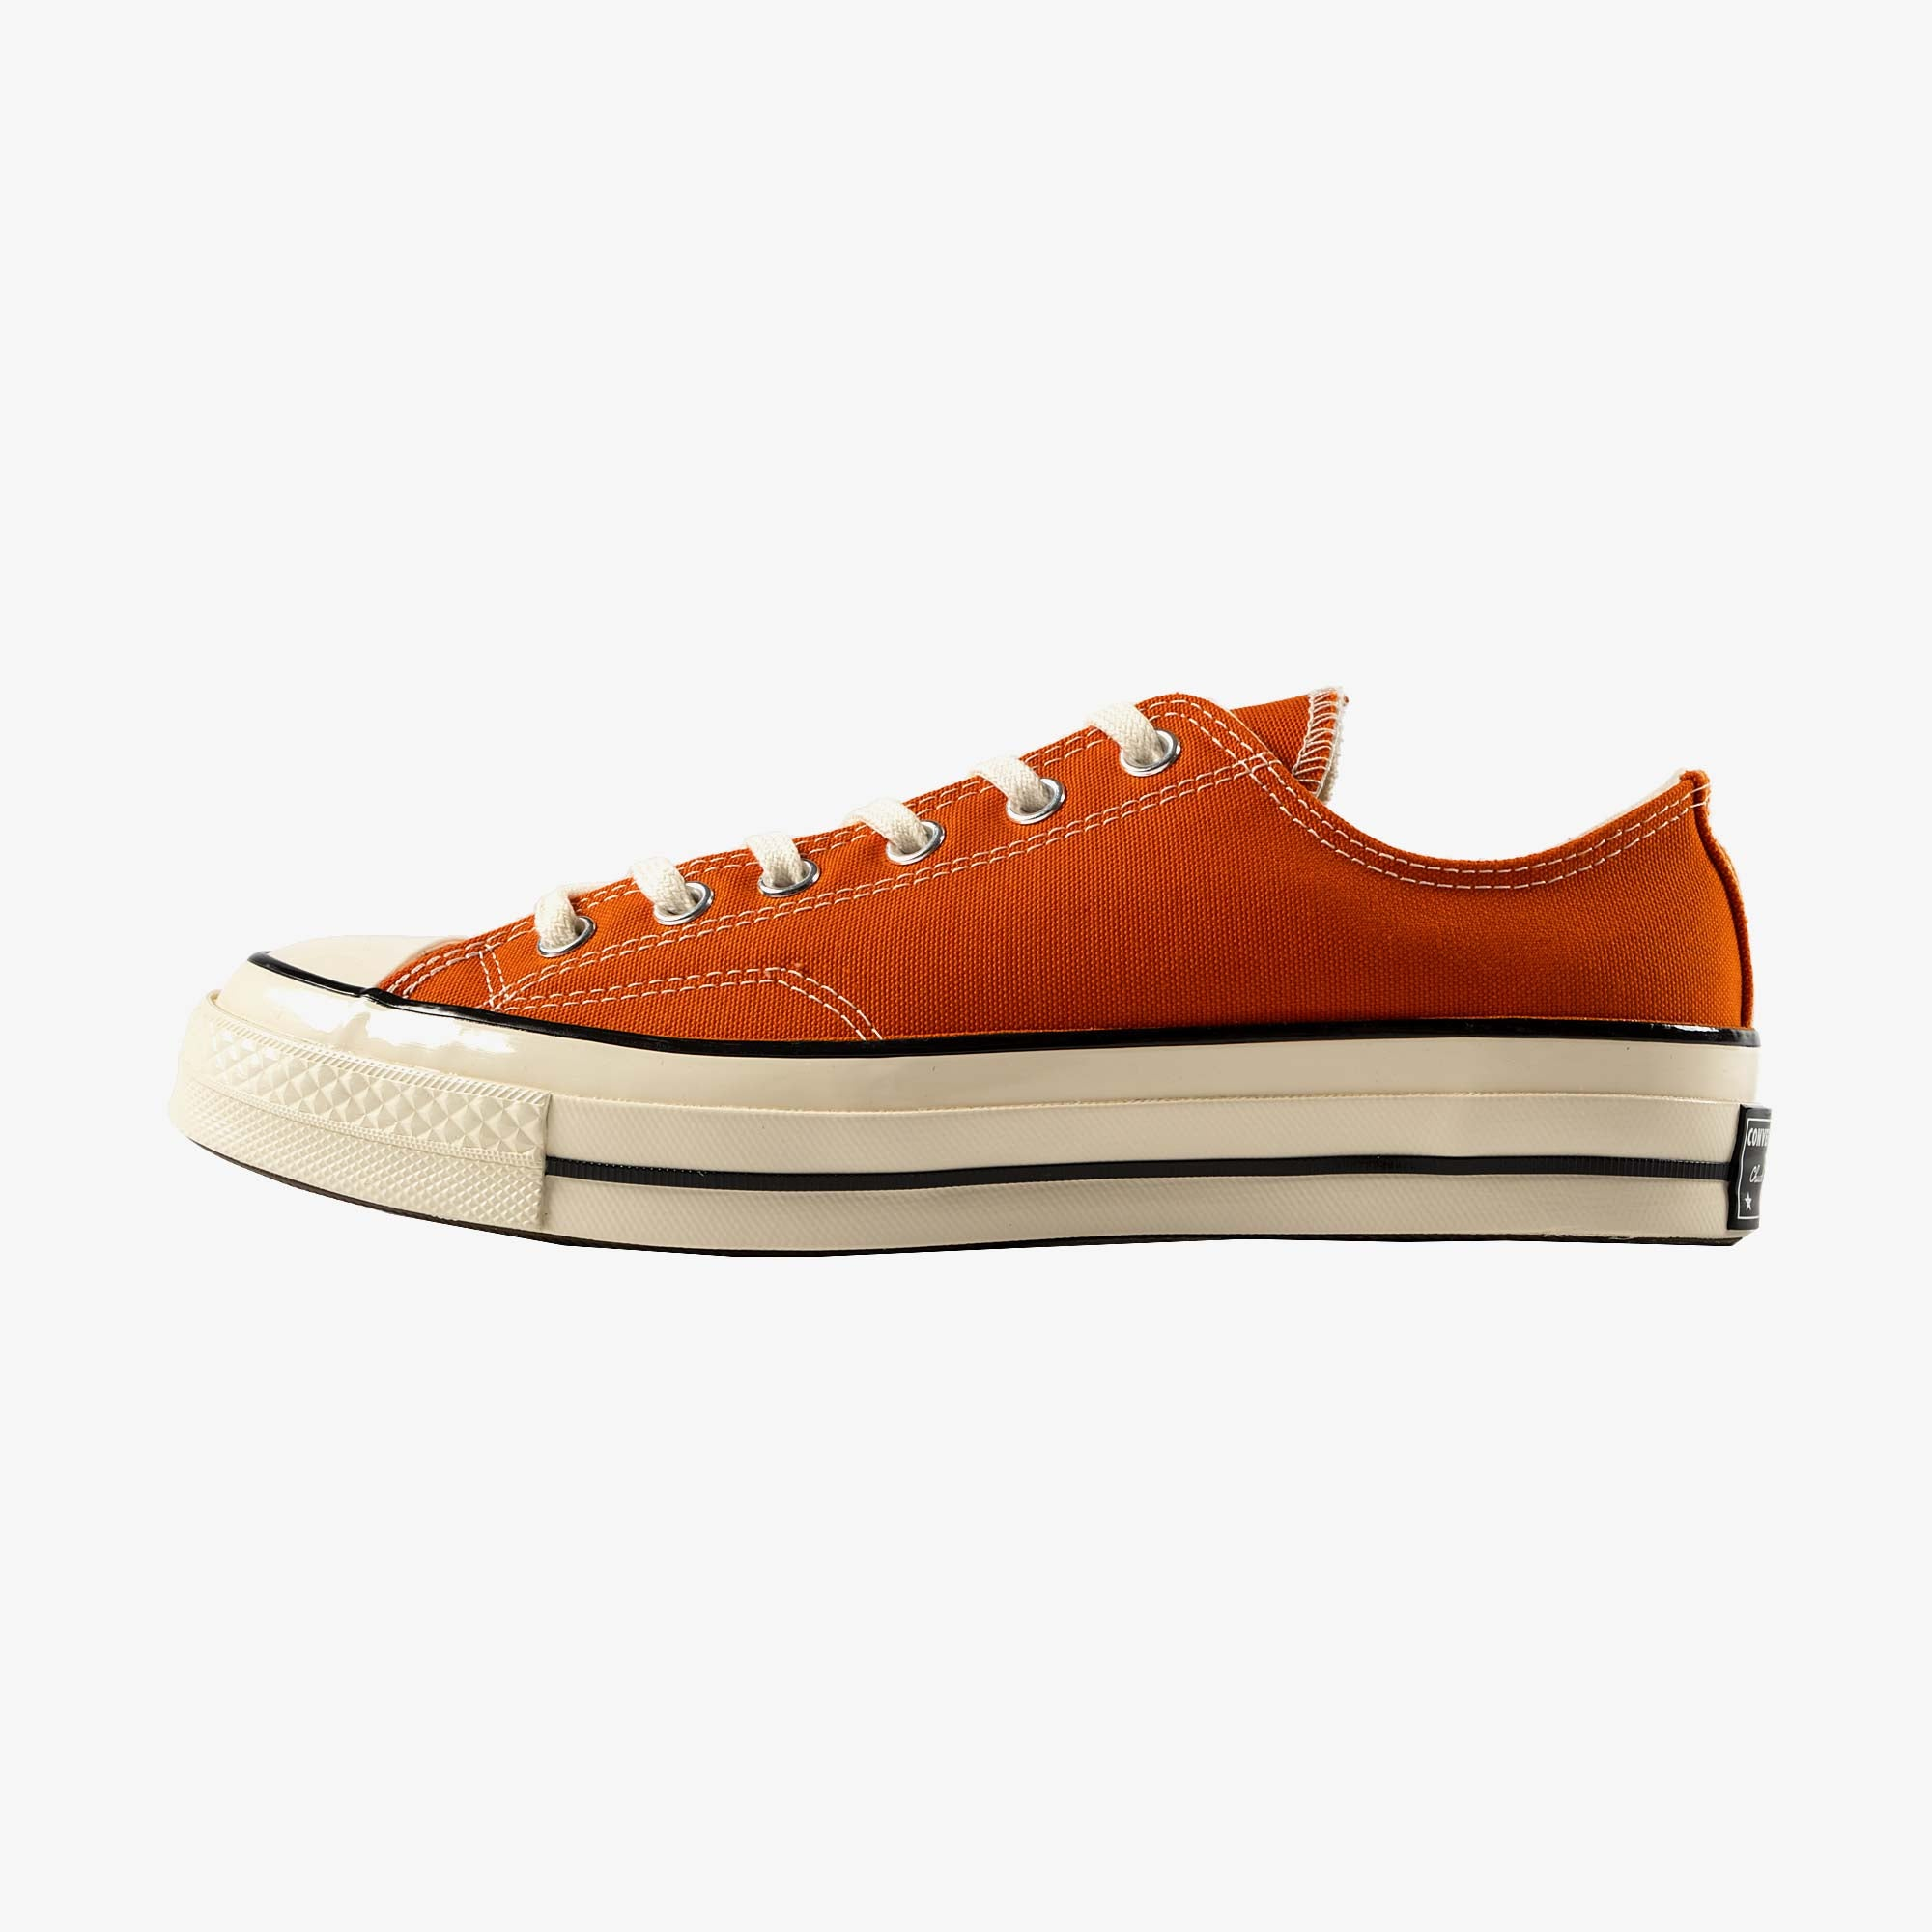 Converse Chuck Taylor Low 70 Recycled Canvas - Fire Pit 3